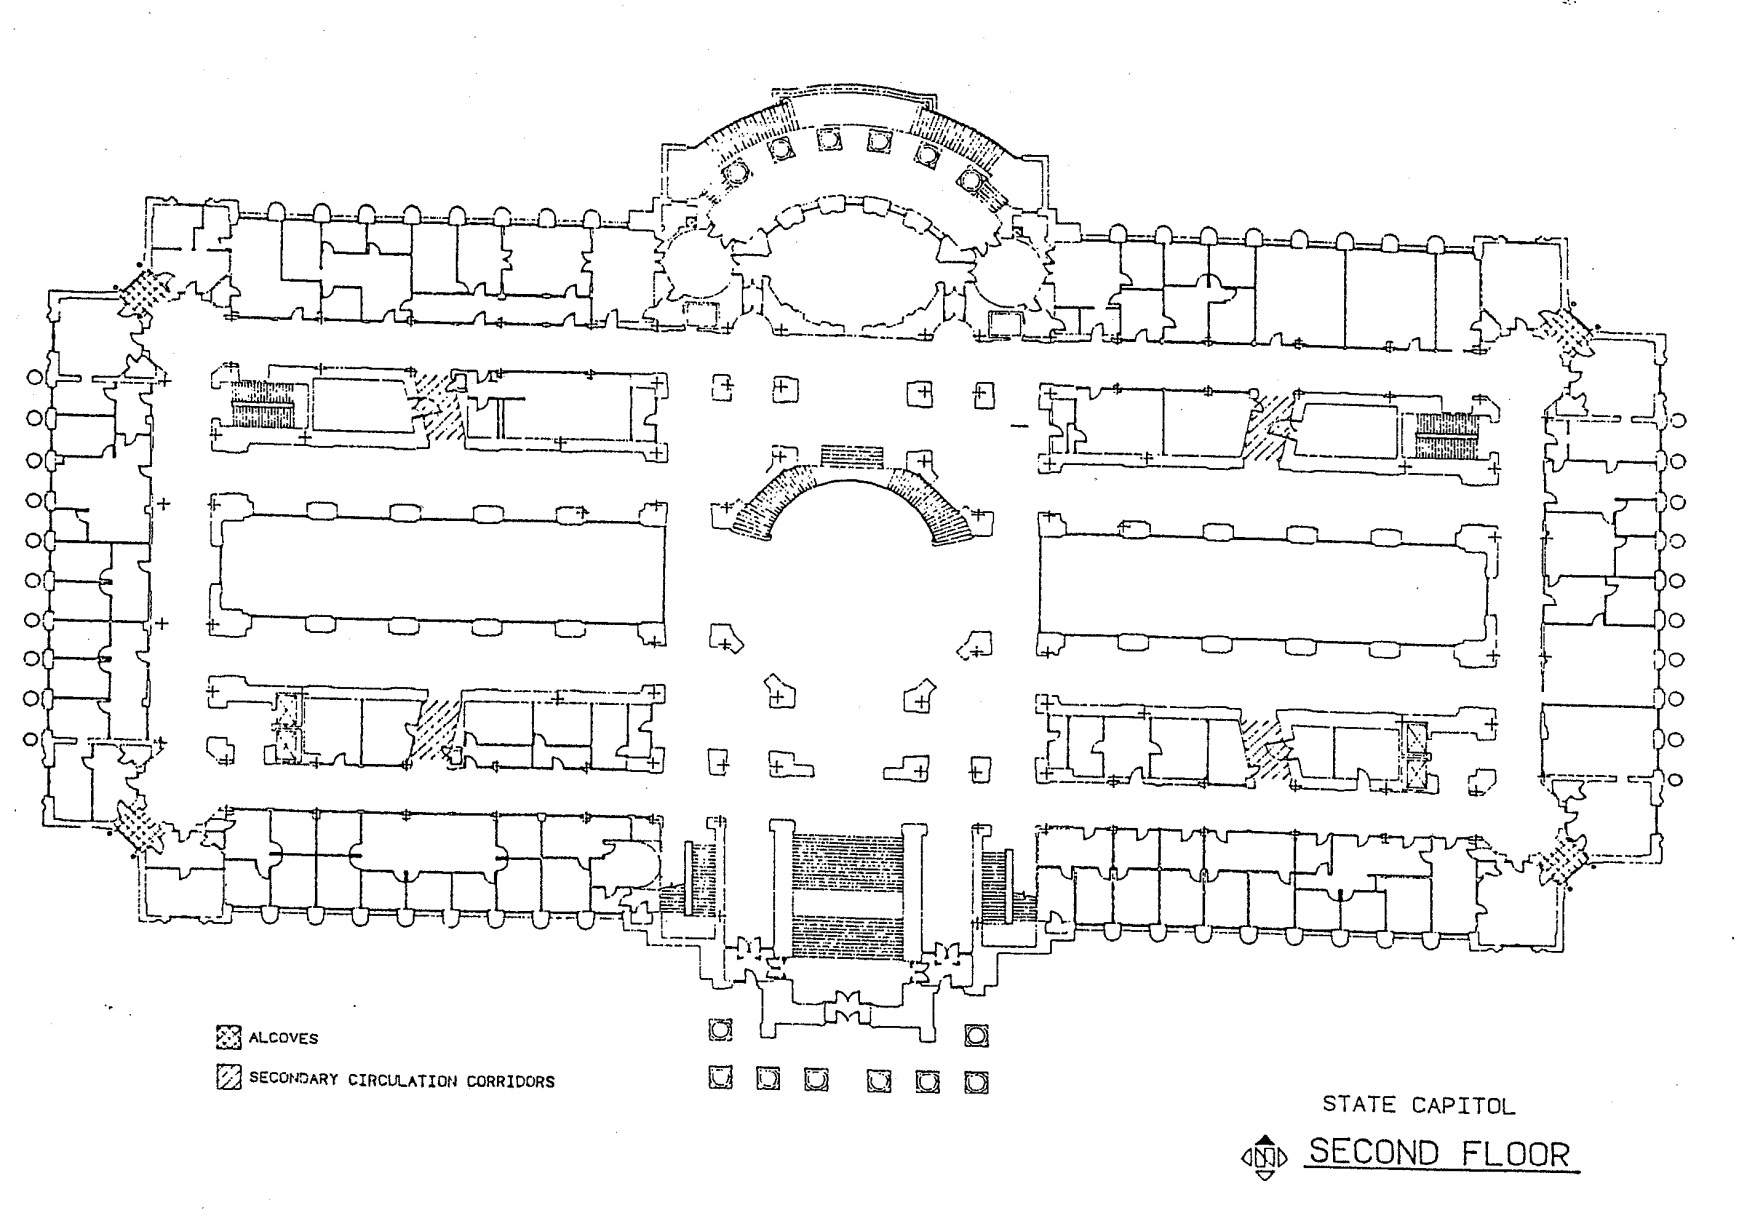 Second floor of the Missouri State Capitol map